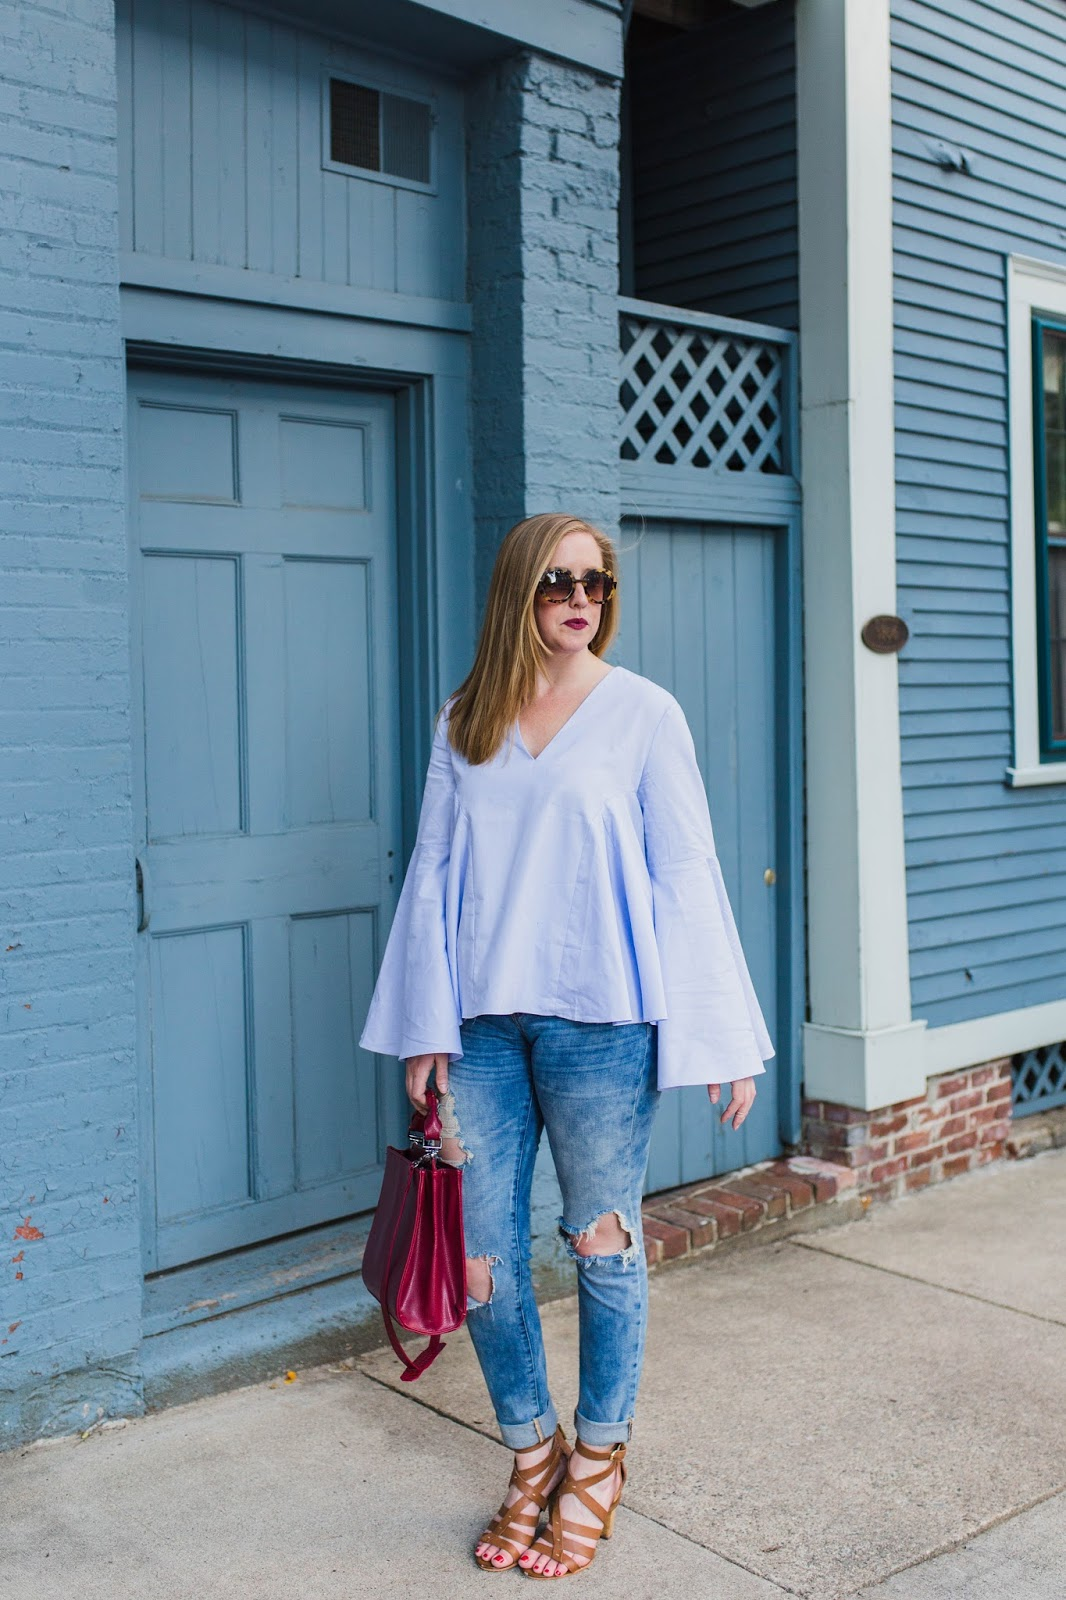 charlestown fashion blogger, lcs studios, boston style blogger, on the blog, bell sleeve top, shopbop bell sleeve